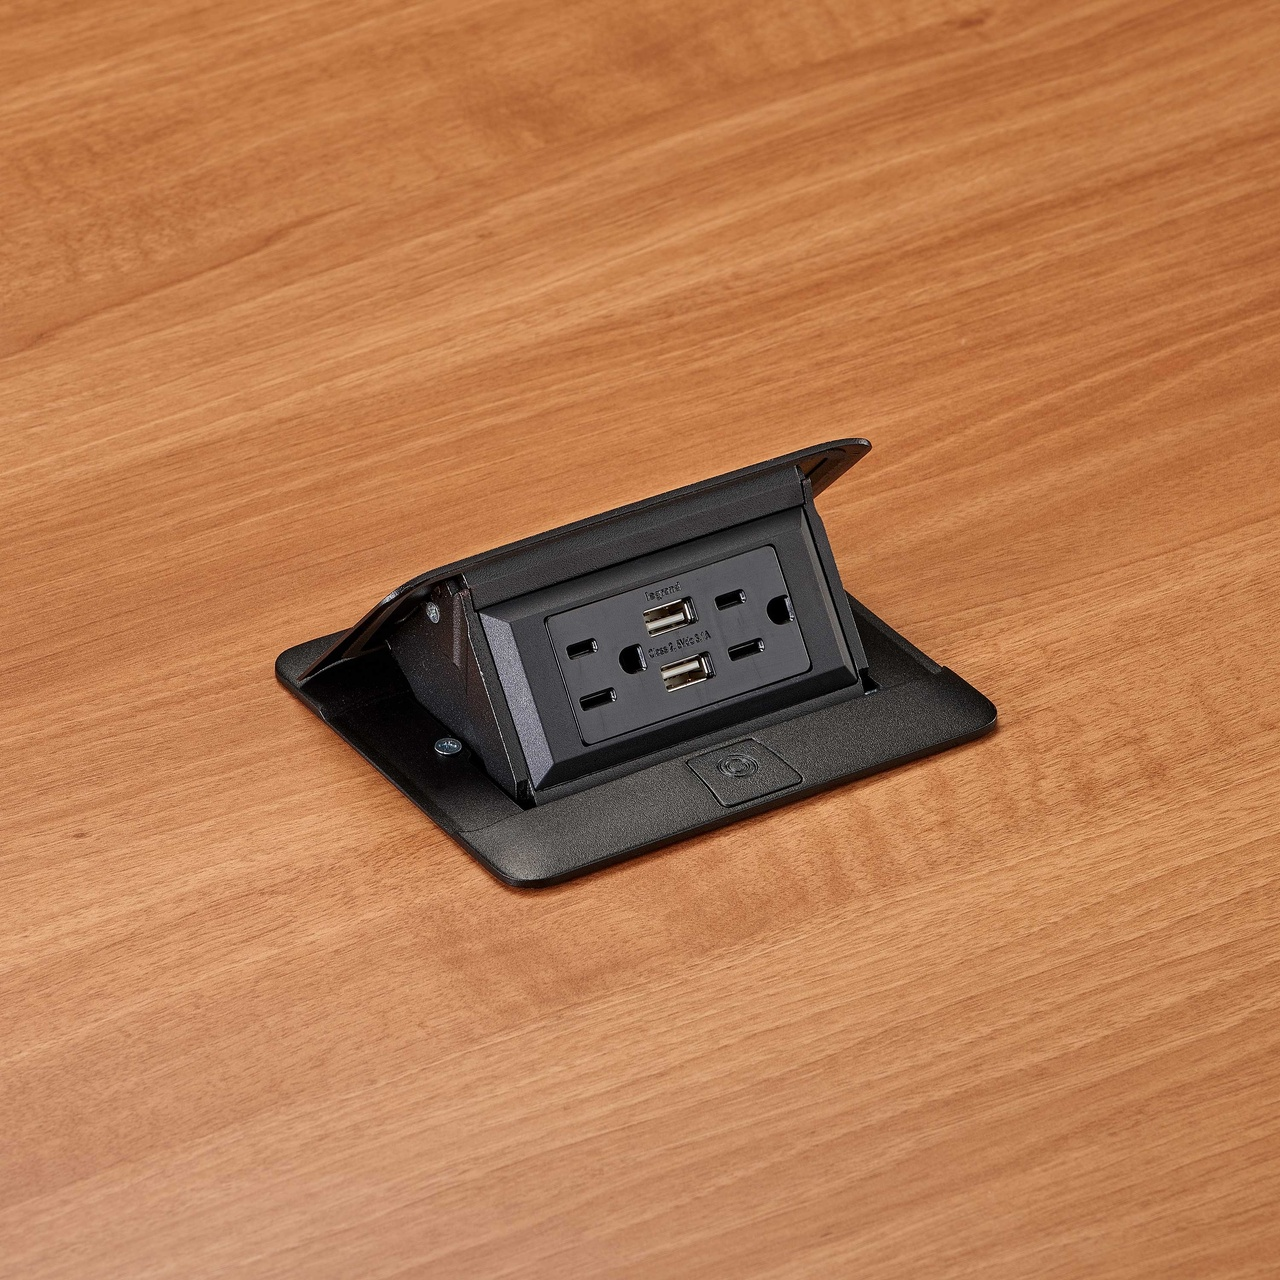 deQuorum Flip-Up Table Box 1-Gang 15A recep 3.1A USB, black finish-side view, DQFP15UBK